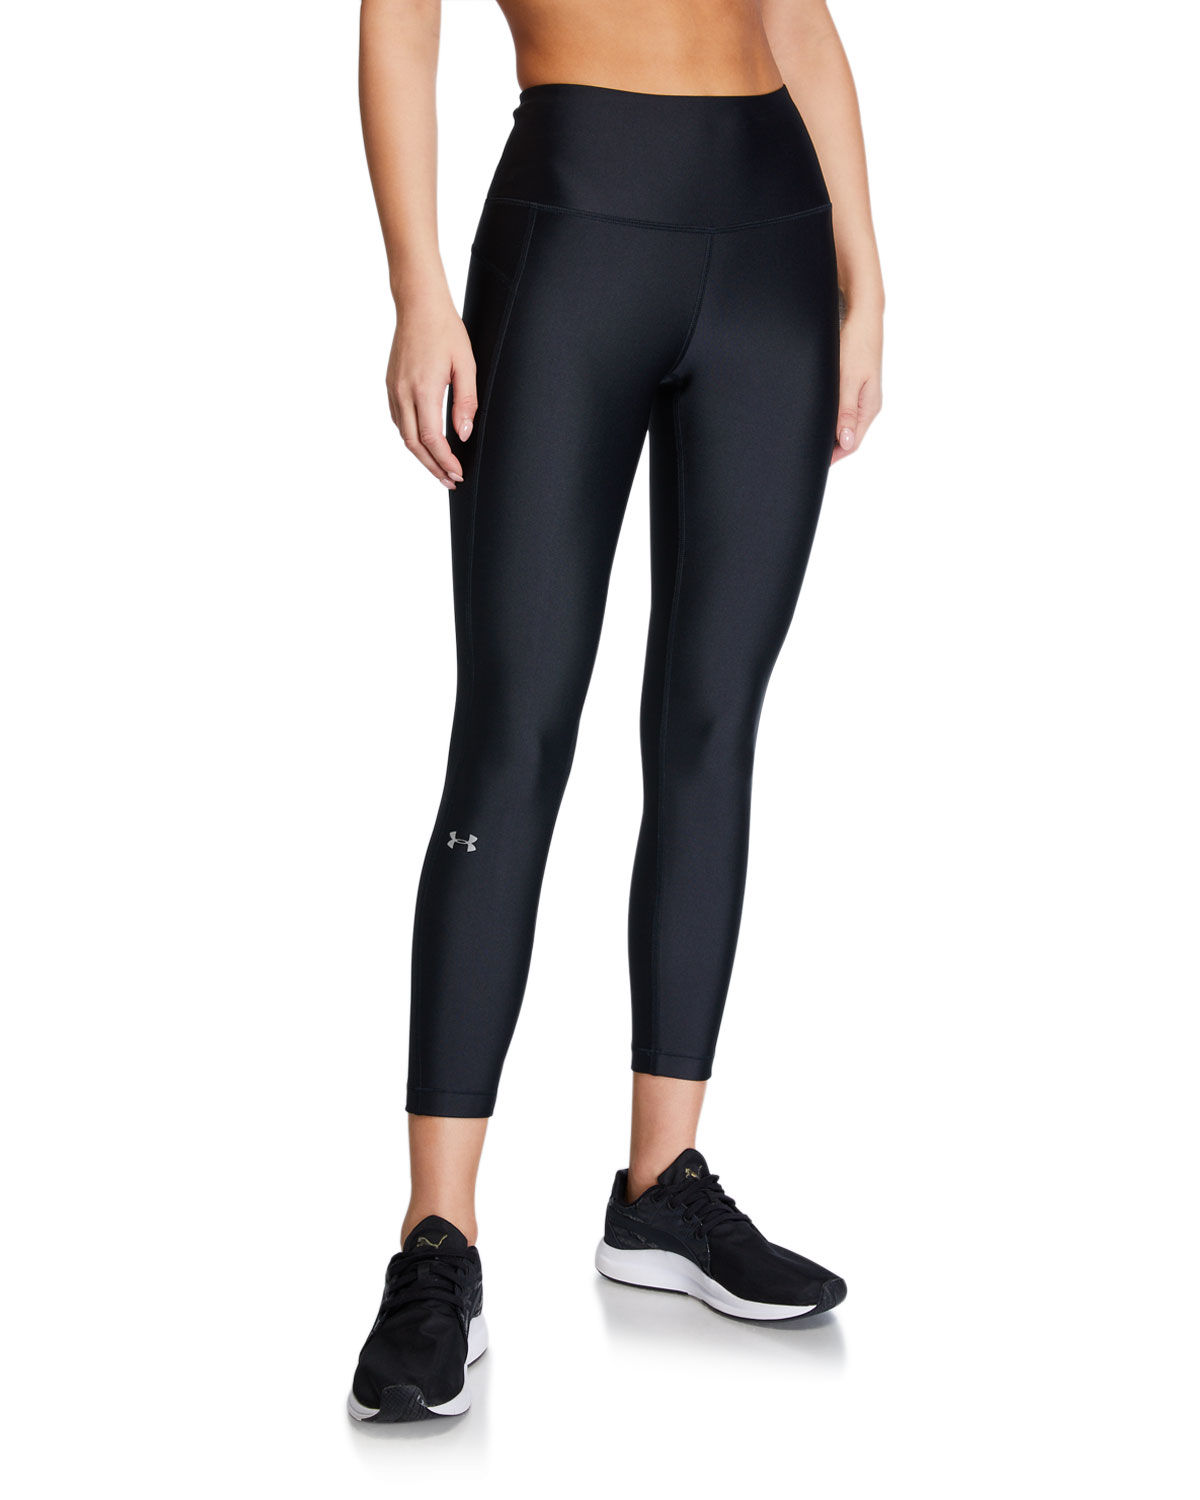 Under Armour Pants ARMOUR HIGH-RISE ANKLE CROP LEGGINGS